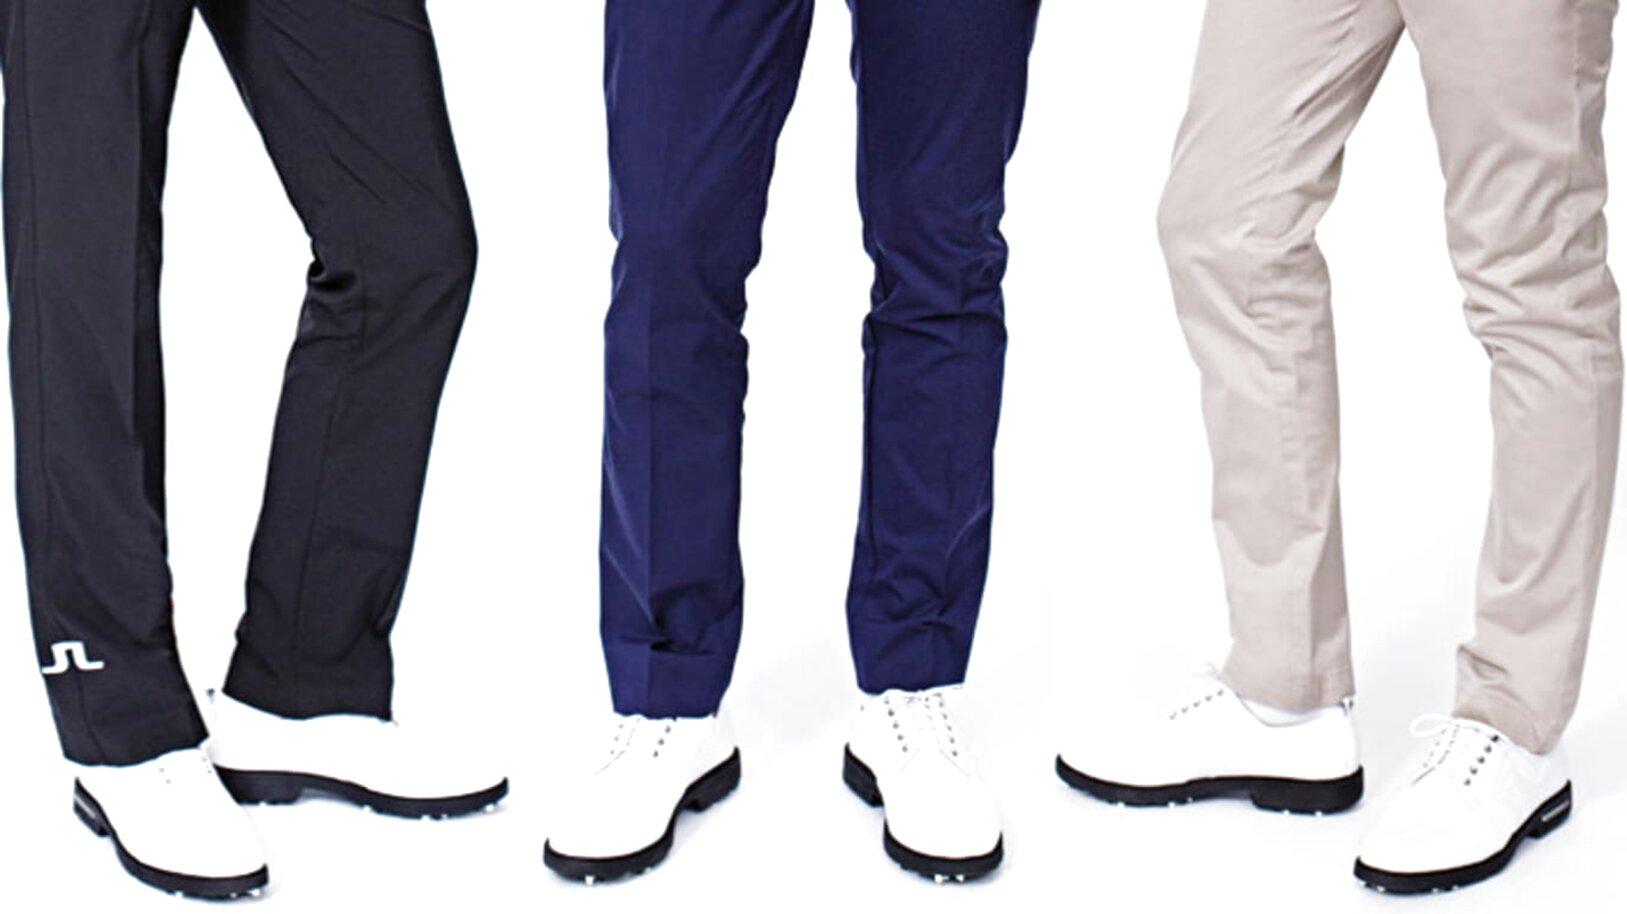 j lindeberg golf trousers for sale